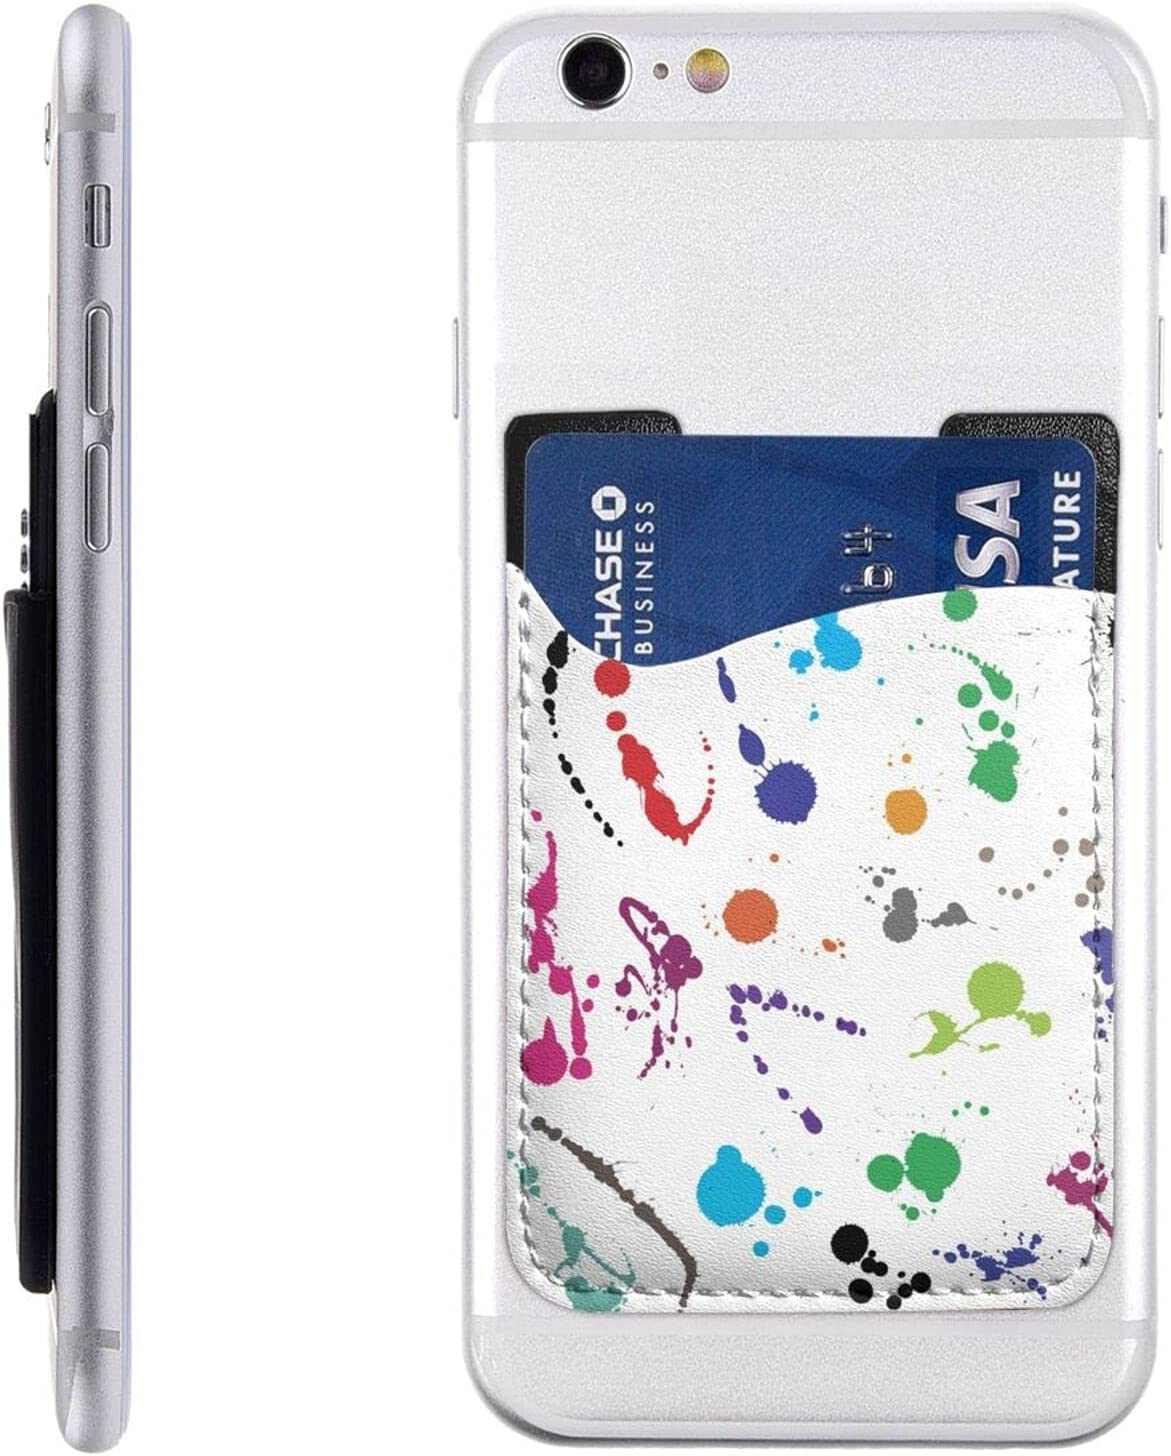 Indianapolis Mall Abstract Paint security Splashes Phone Card On Ca Holder Cell Stick